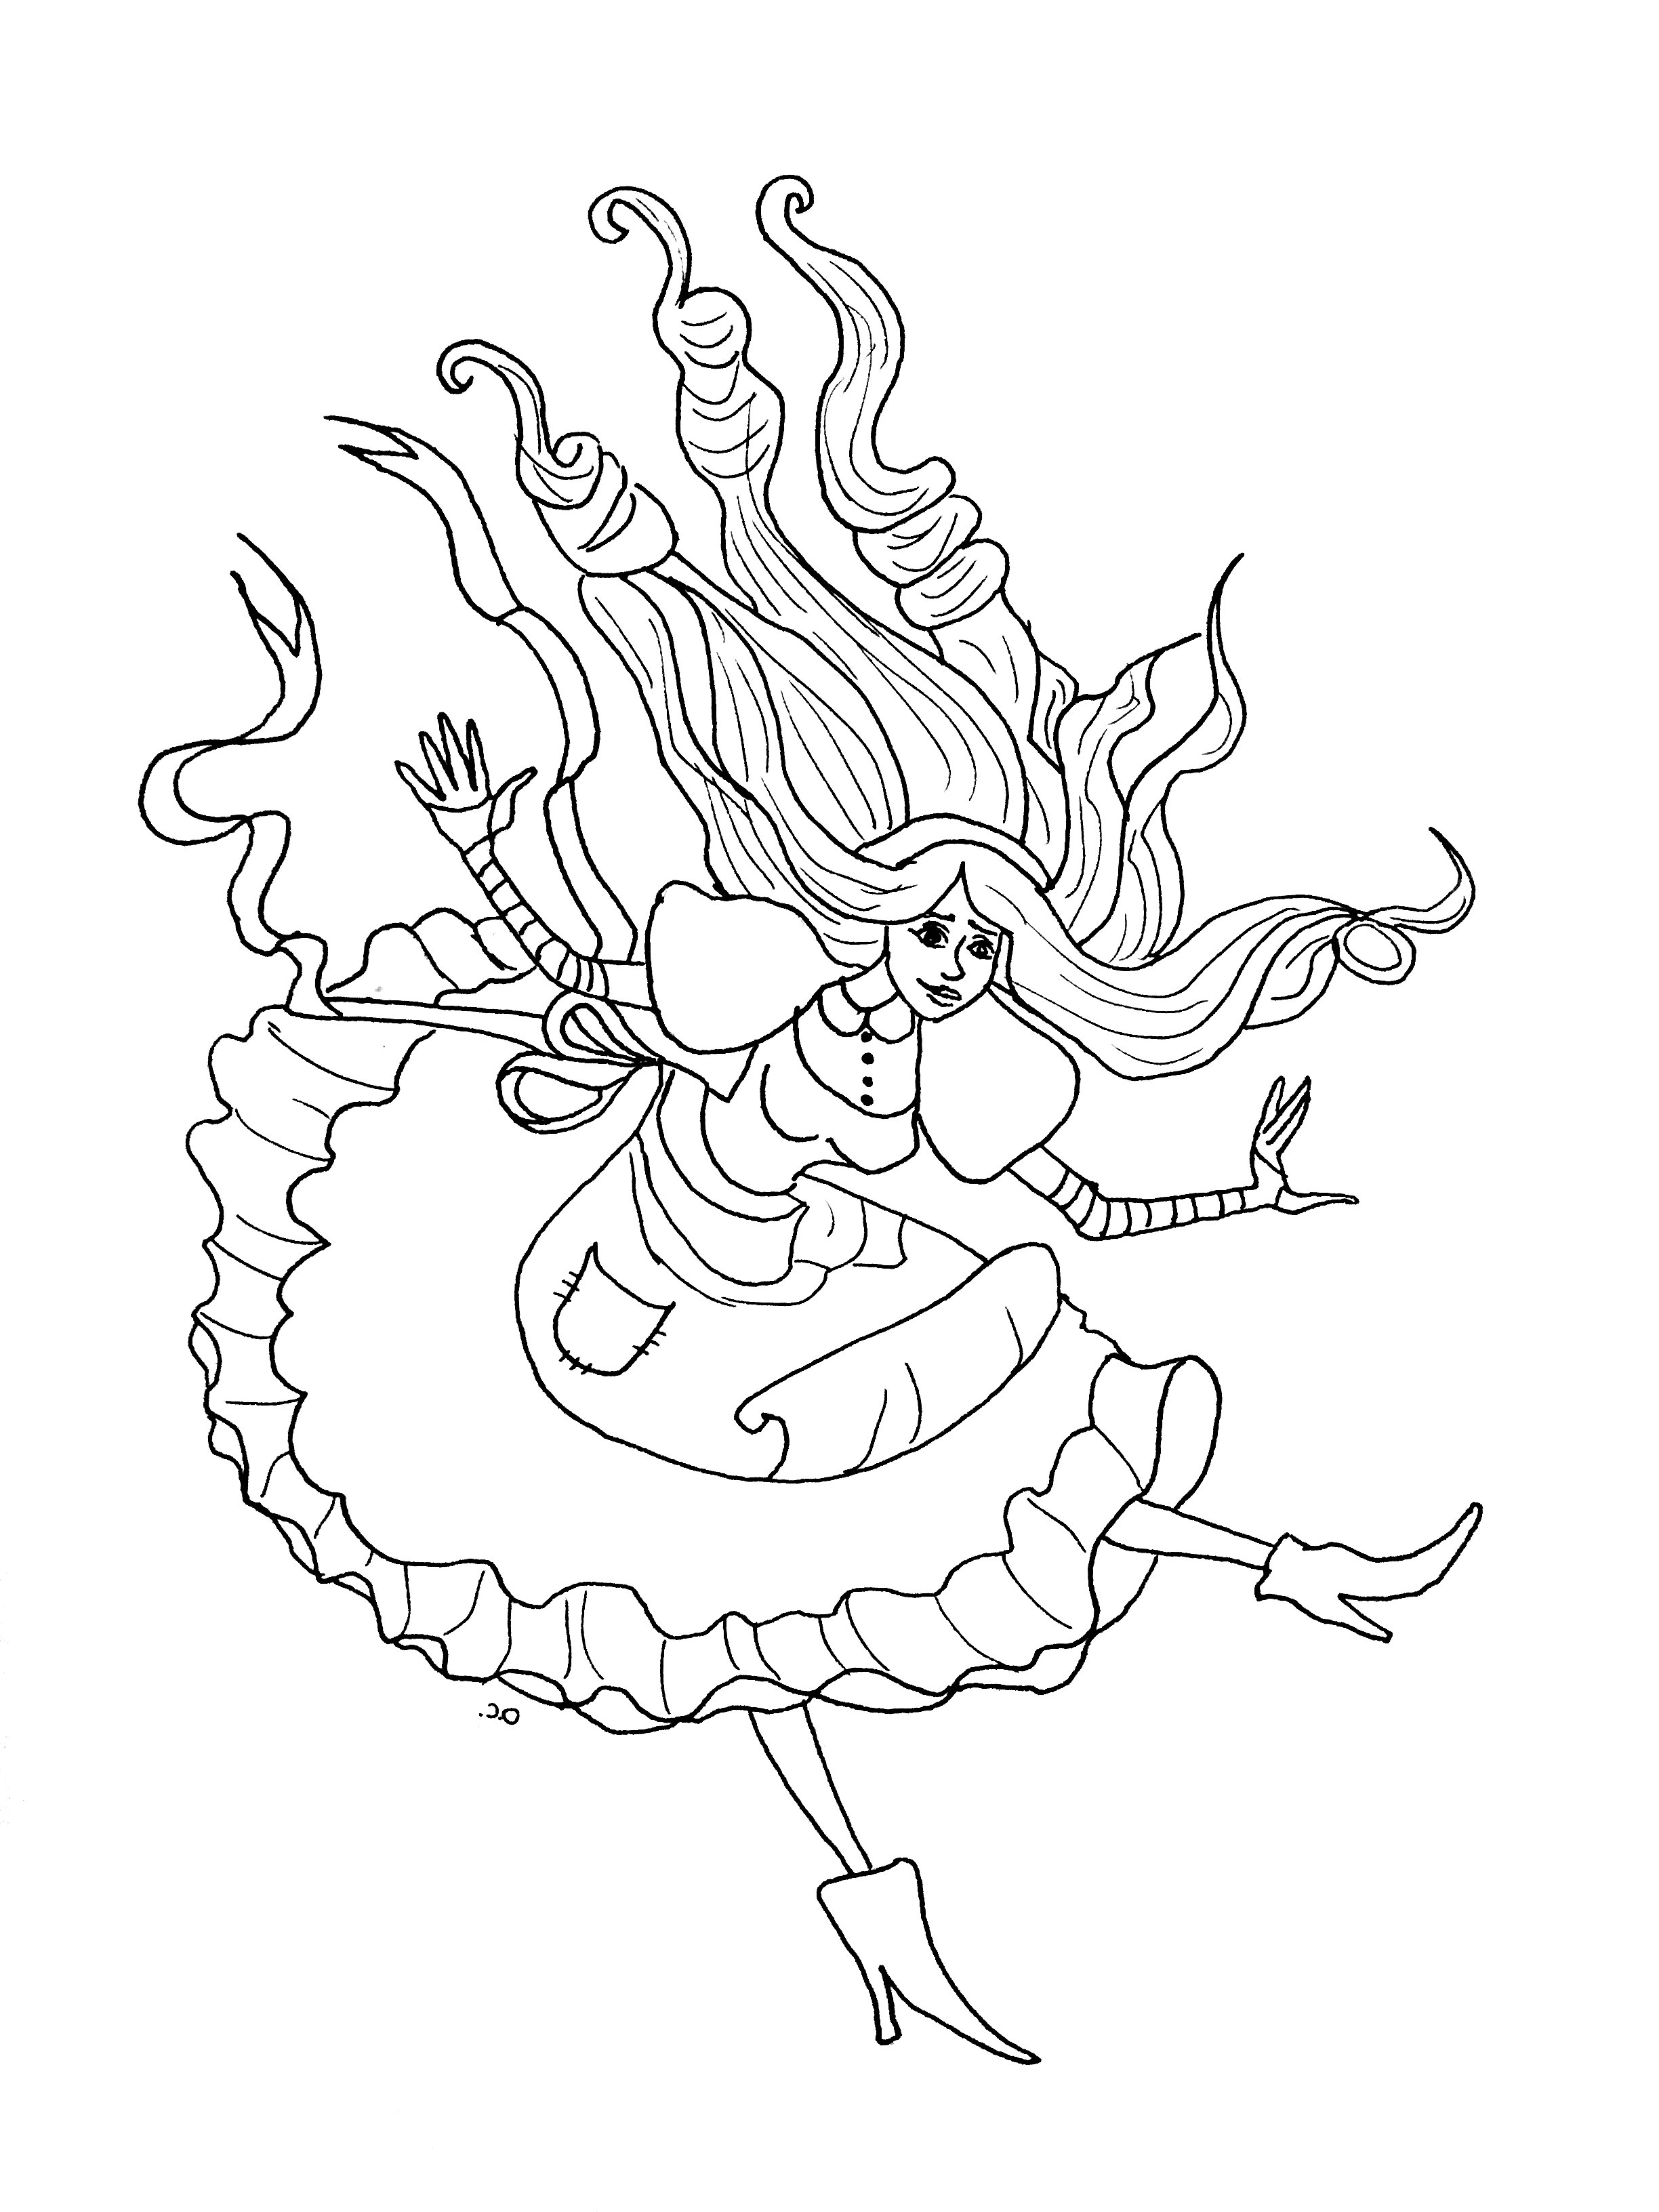 Incredible Alice coloring page to print and color for free